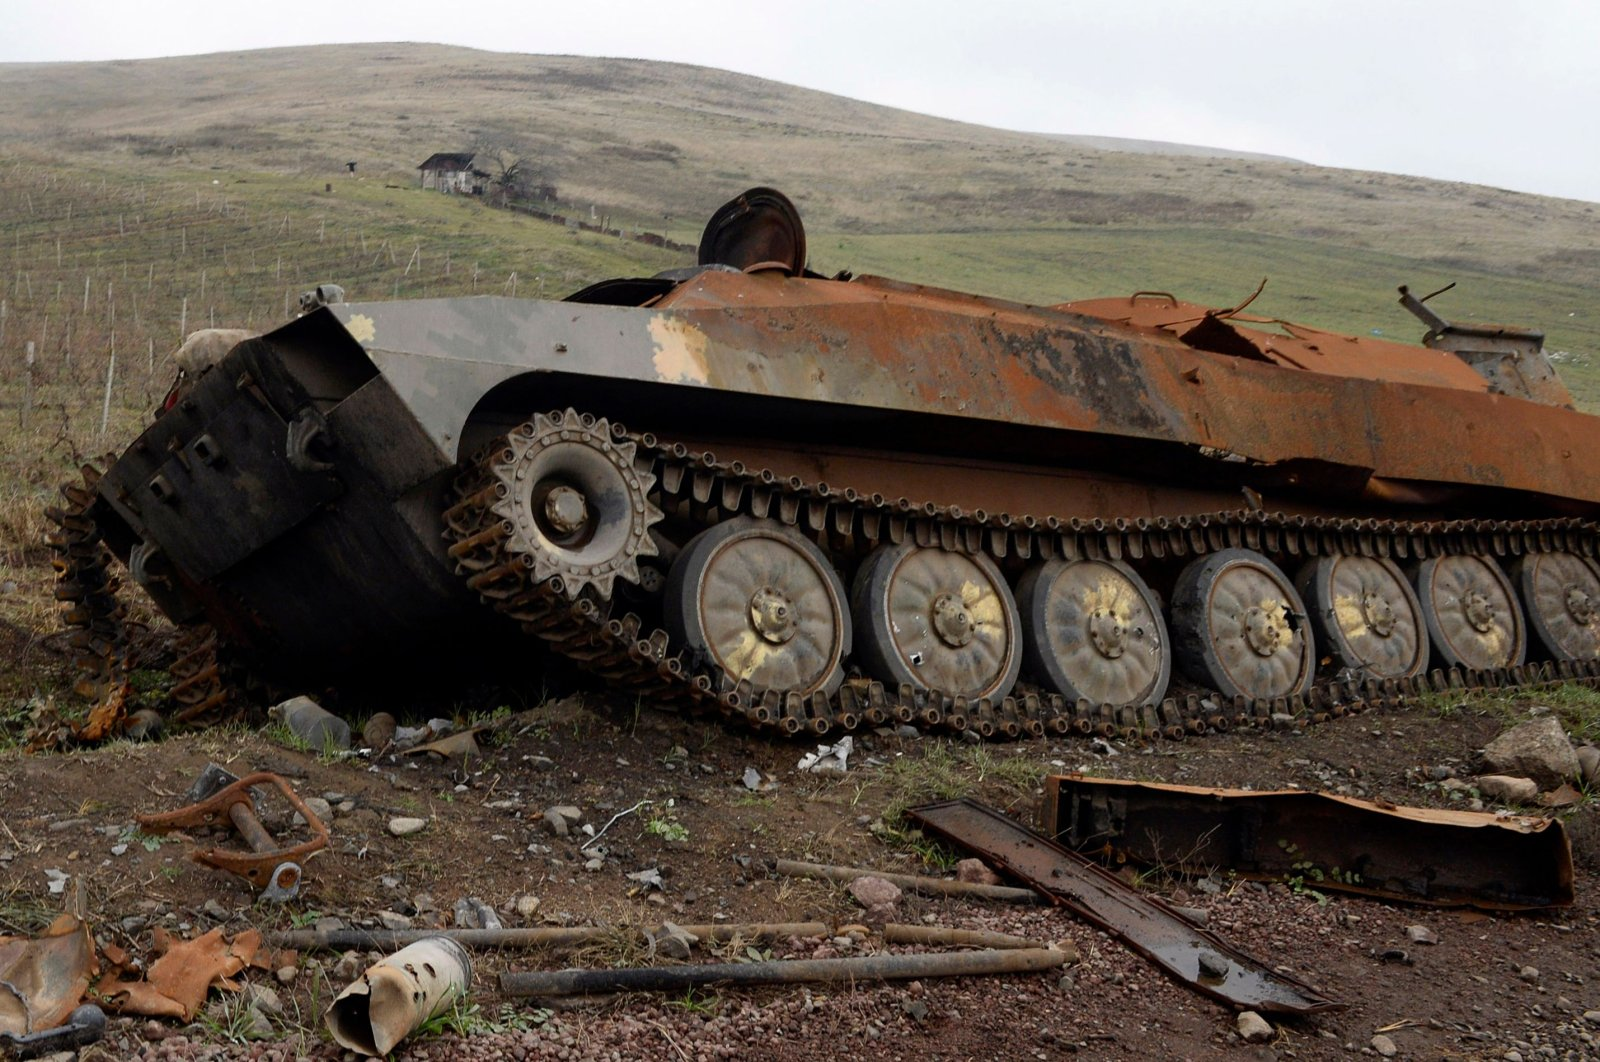 A destroyed Armenian military vehicle lays in the countryside outside the towns of Hadrut and Khojavend, Azerbaijan, Nov. 30, 2020. (AFP Photo)